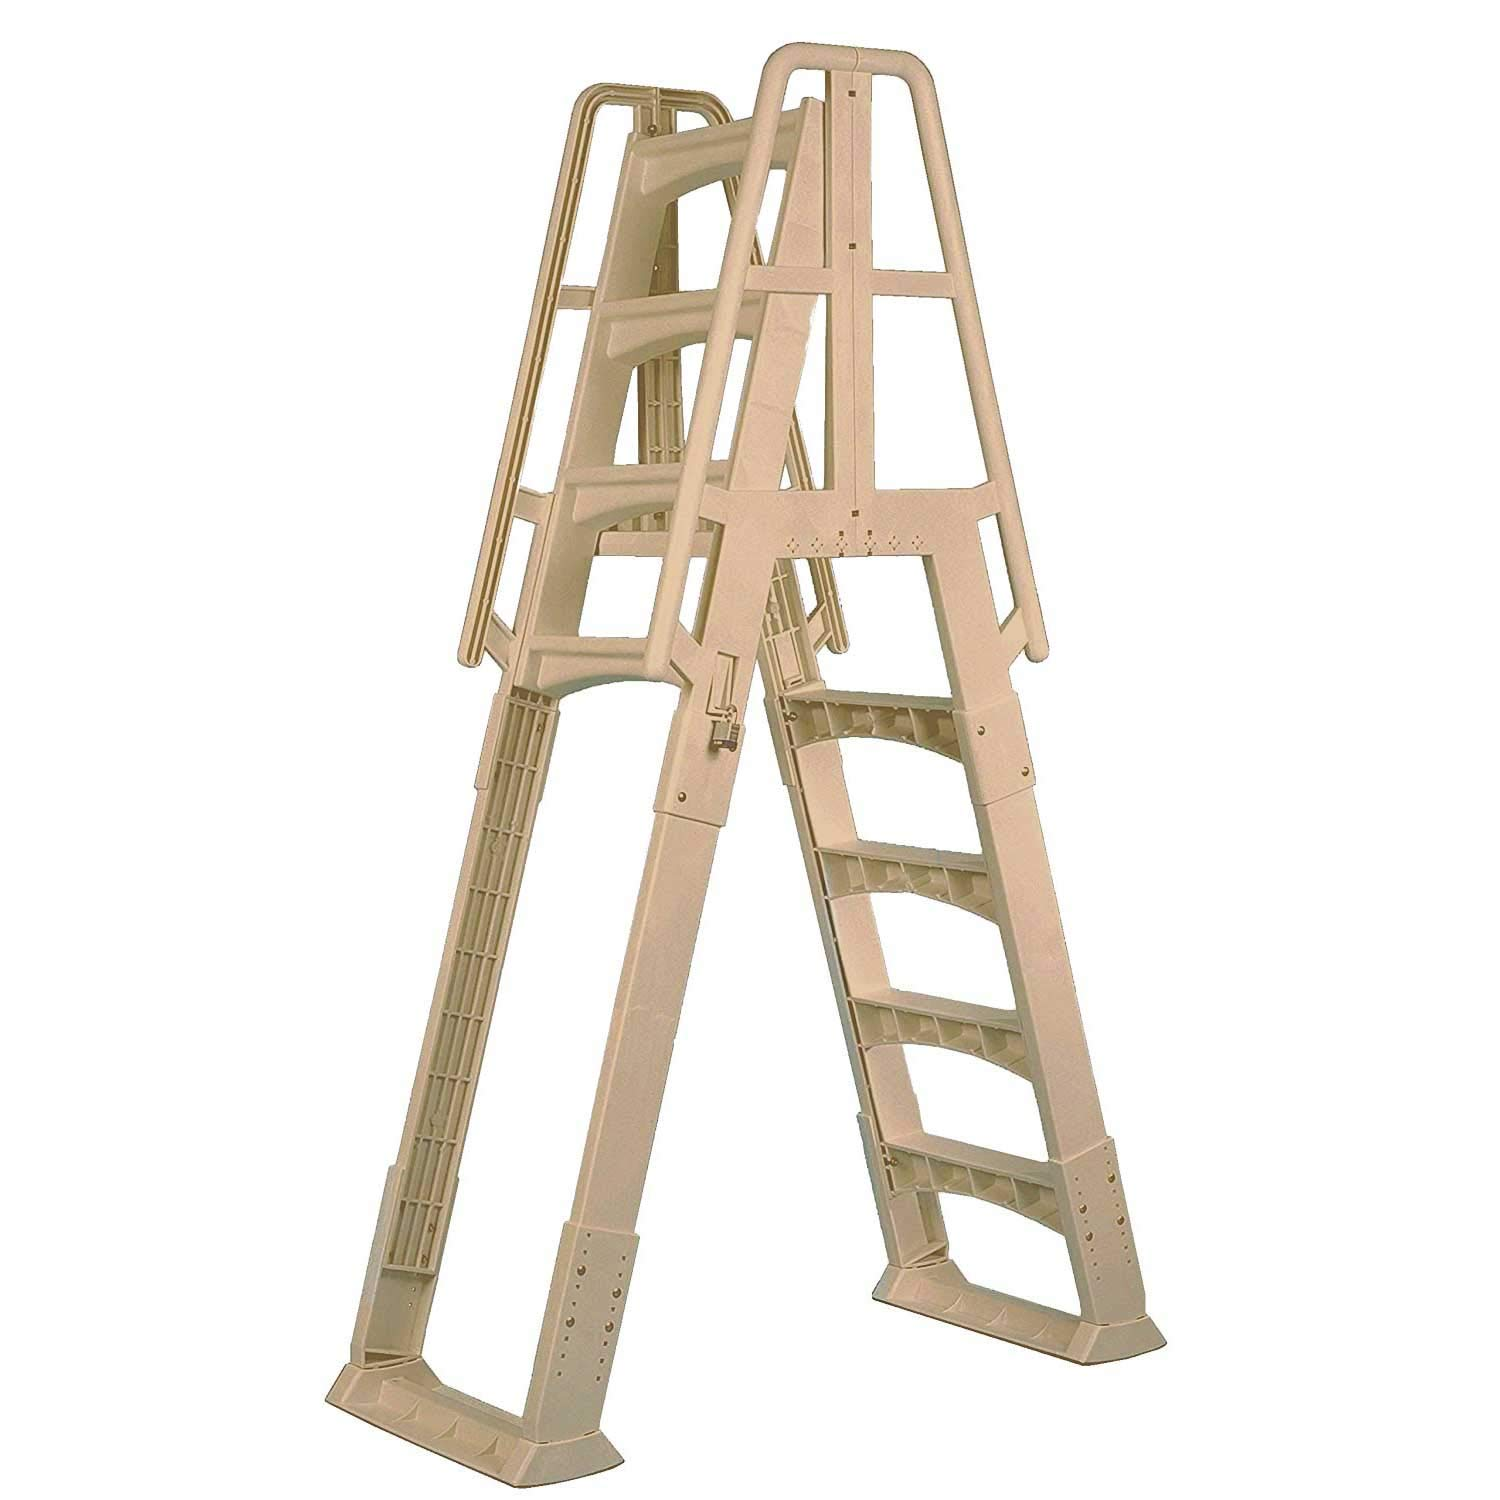 Above Ground Pool Ladders-Vinyl works A-Frame Ladder with Barrier for Swimming pools